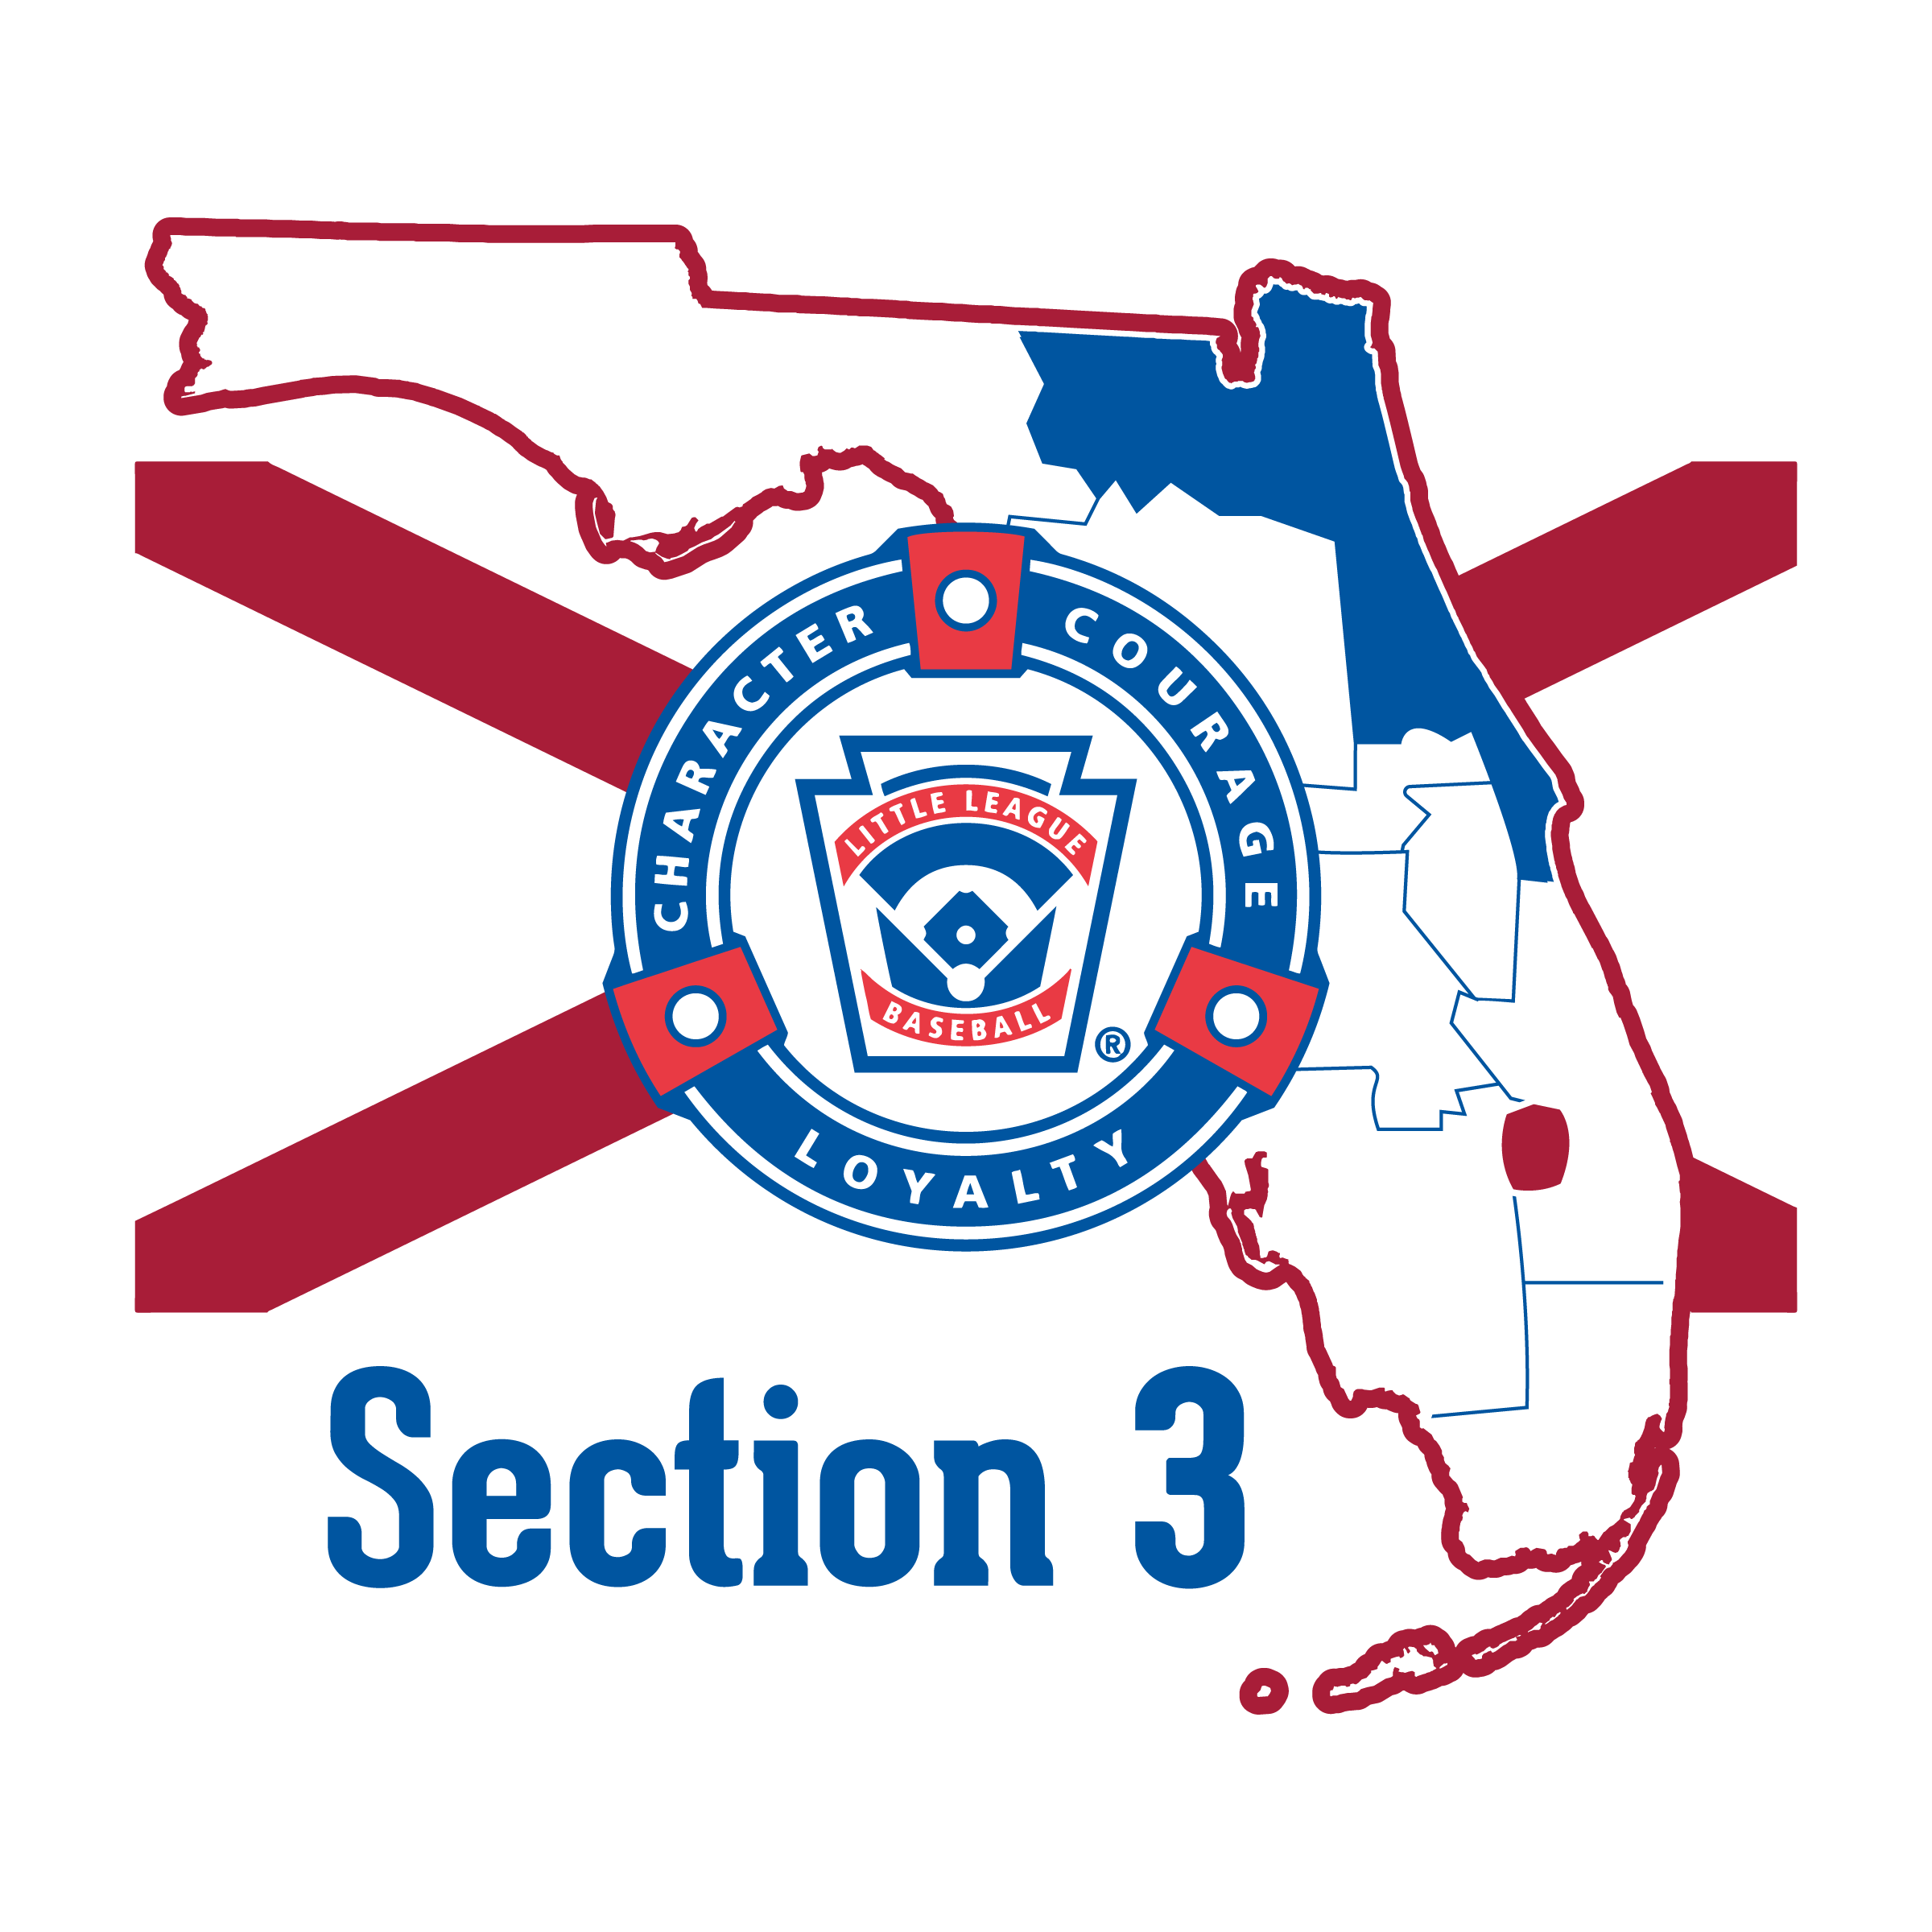 Florida Section 3